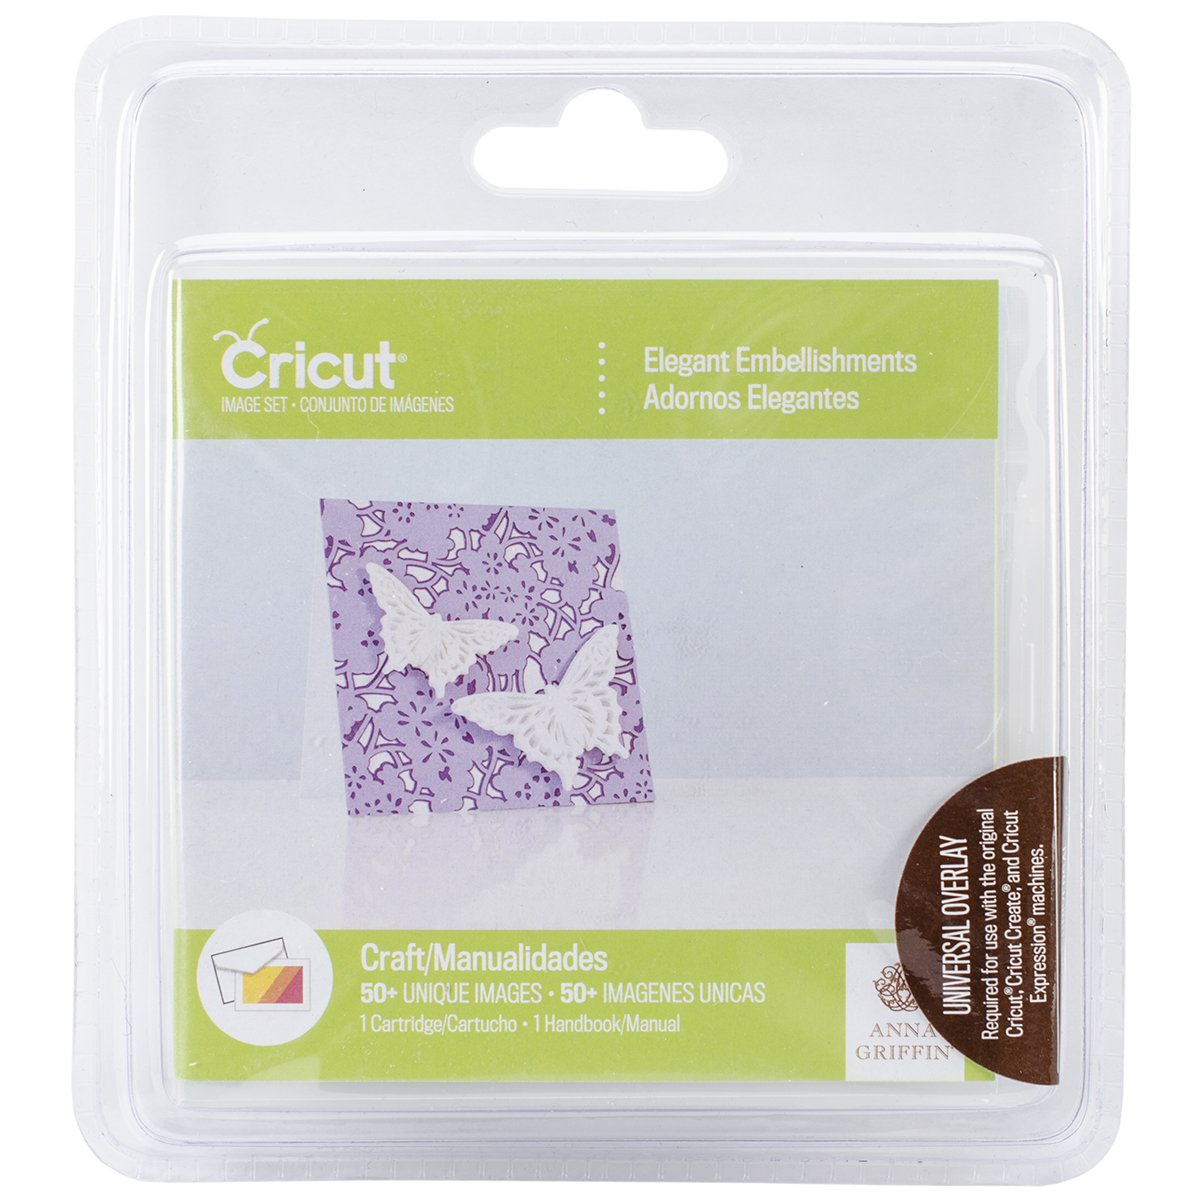 Cricut Elegant Embellishments Cartridge